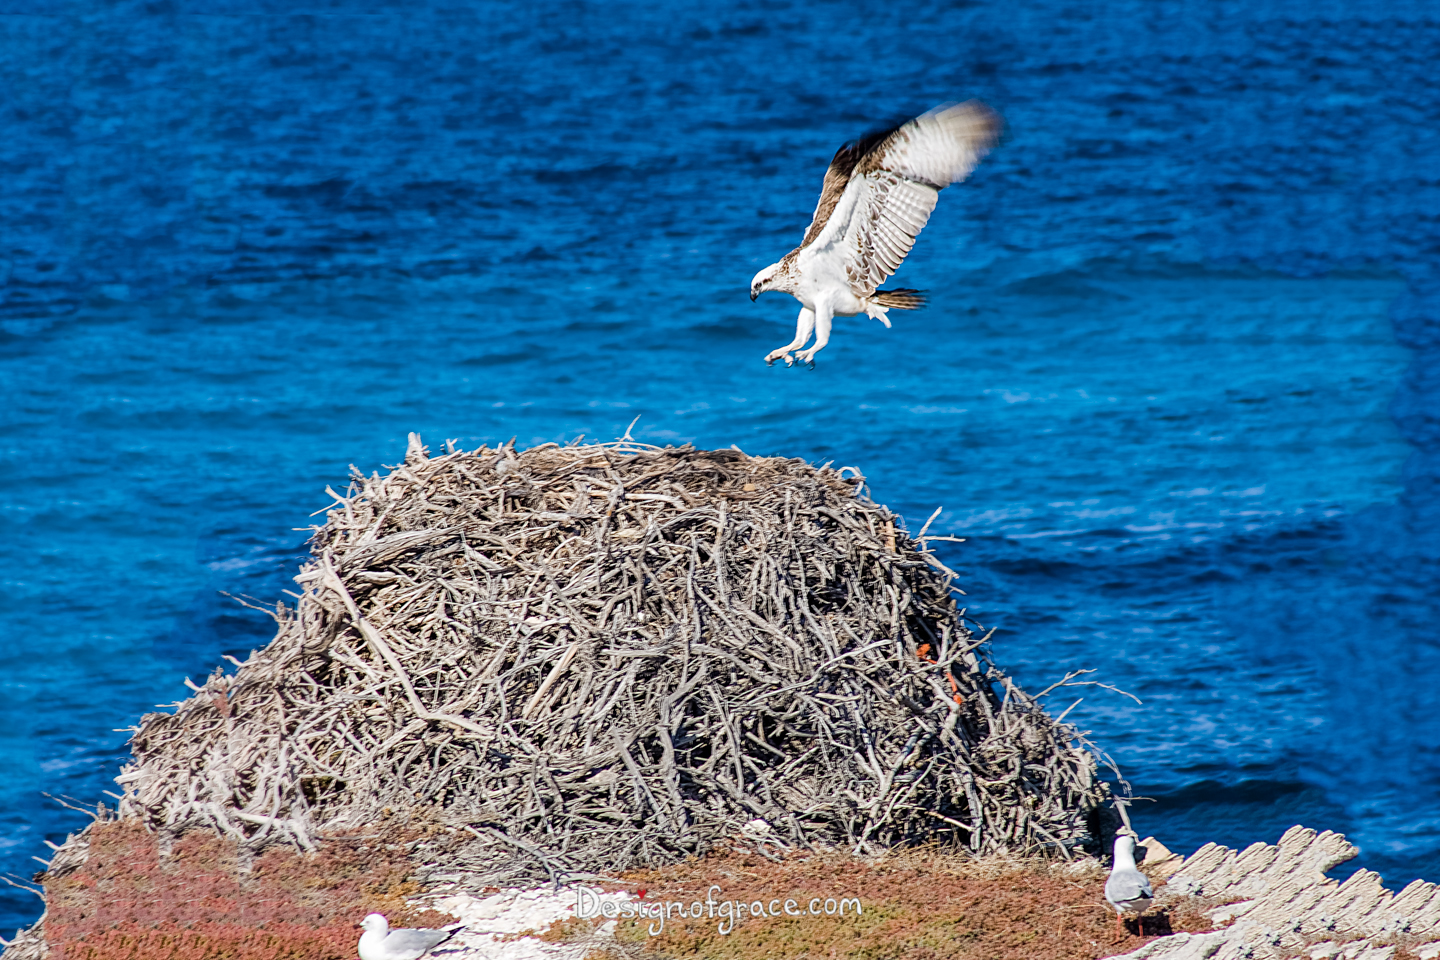 An osprey flying in mid air towards it's nest with a blue water backdrop